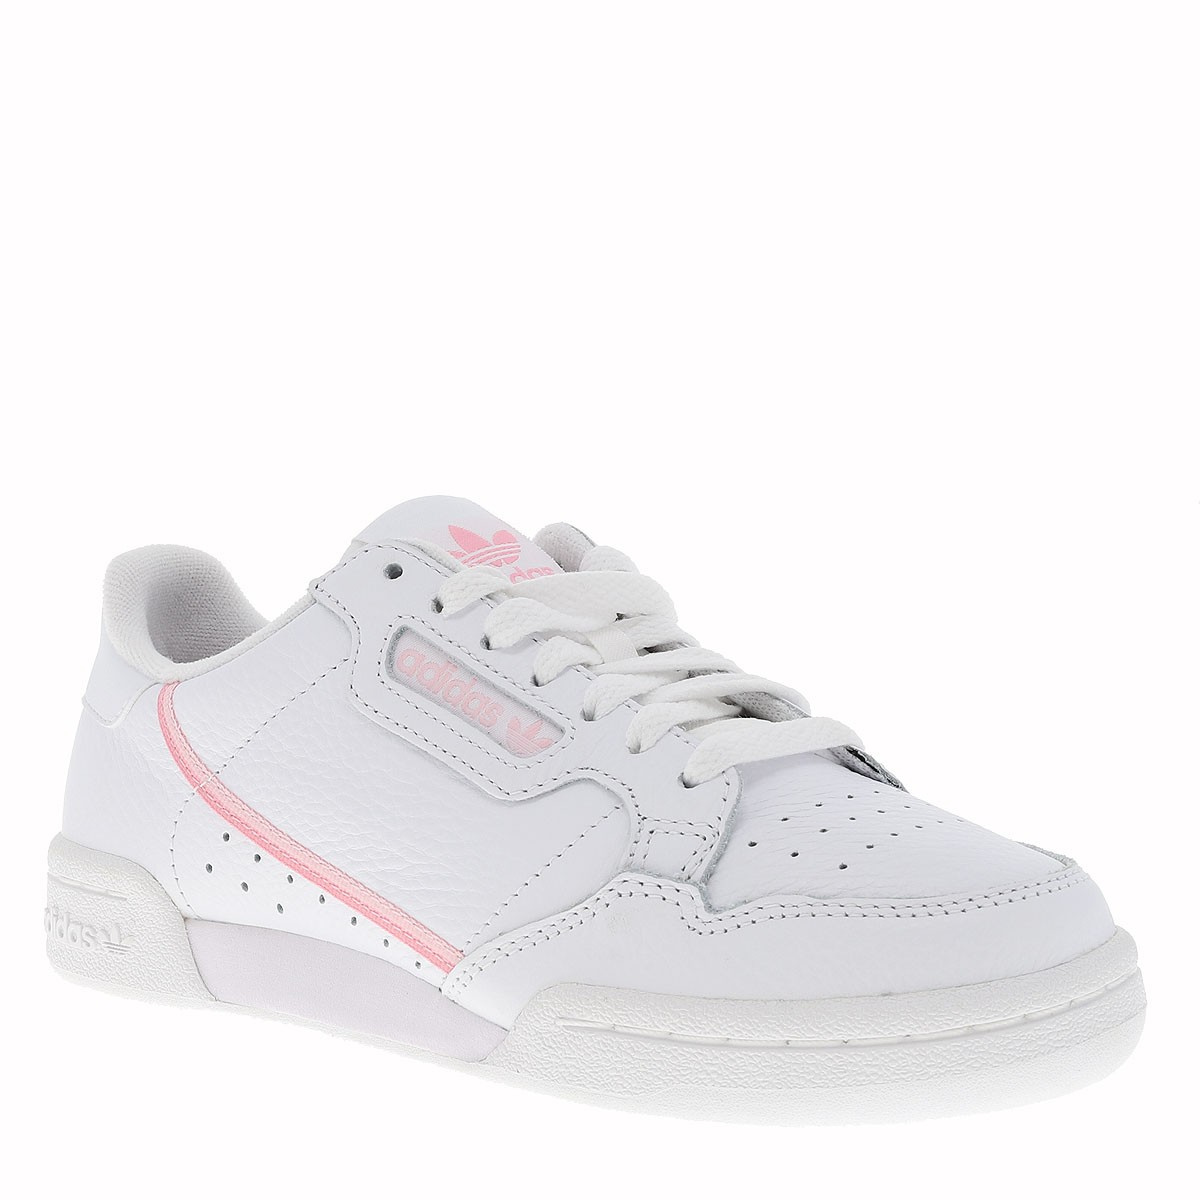 adidas continental 80 femme rose